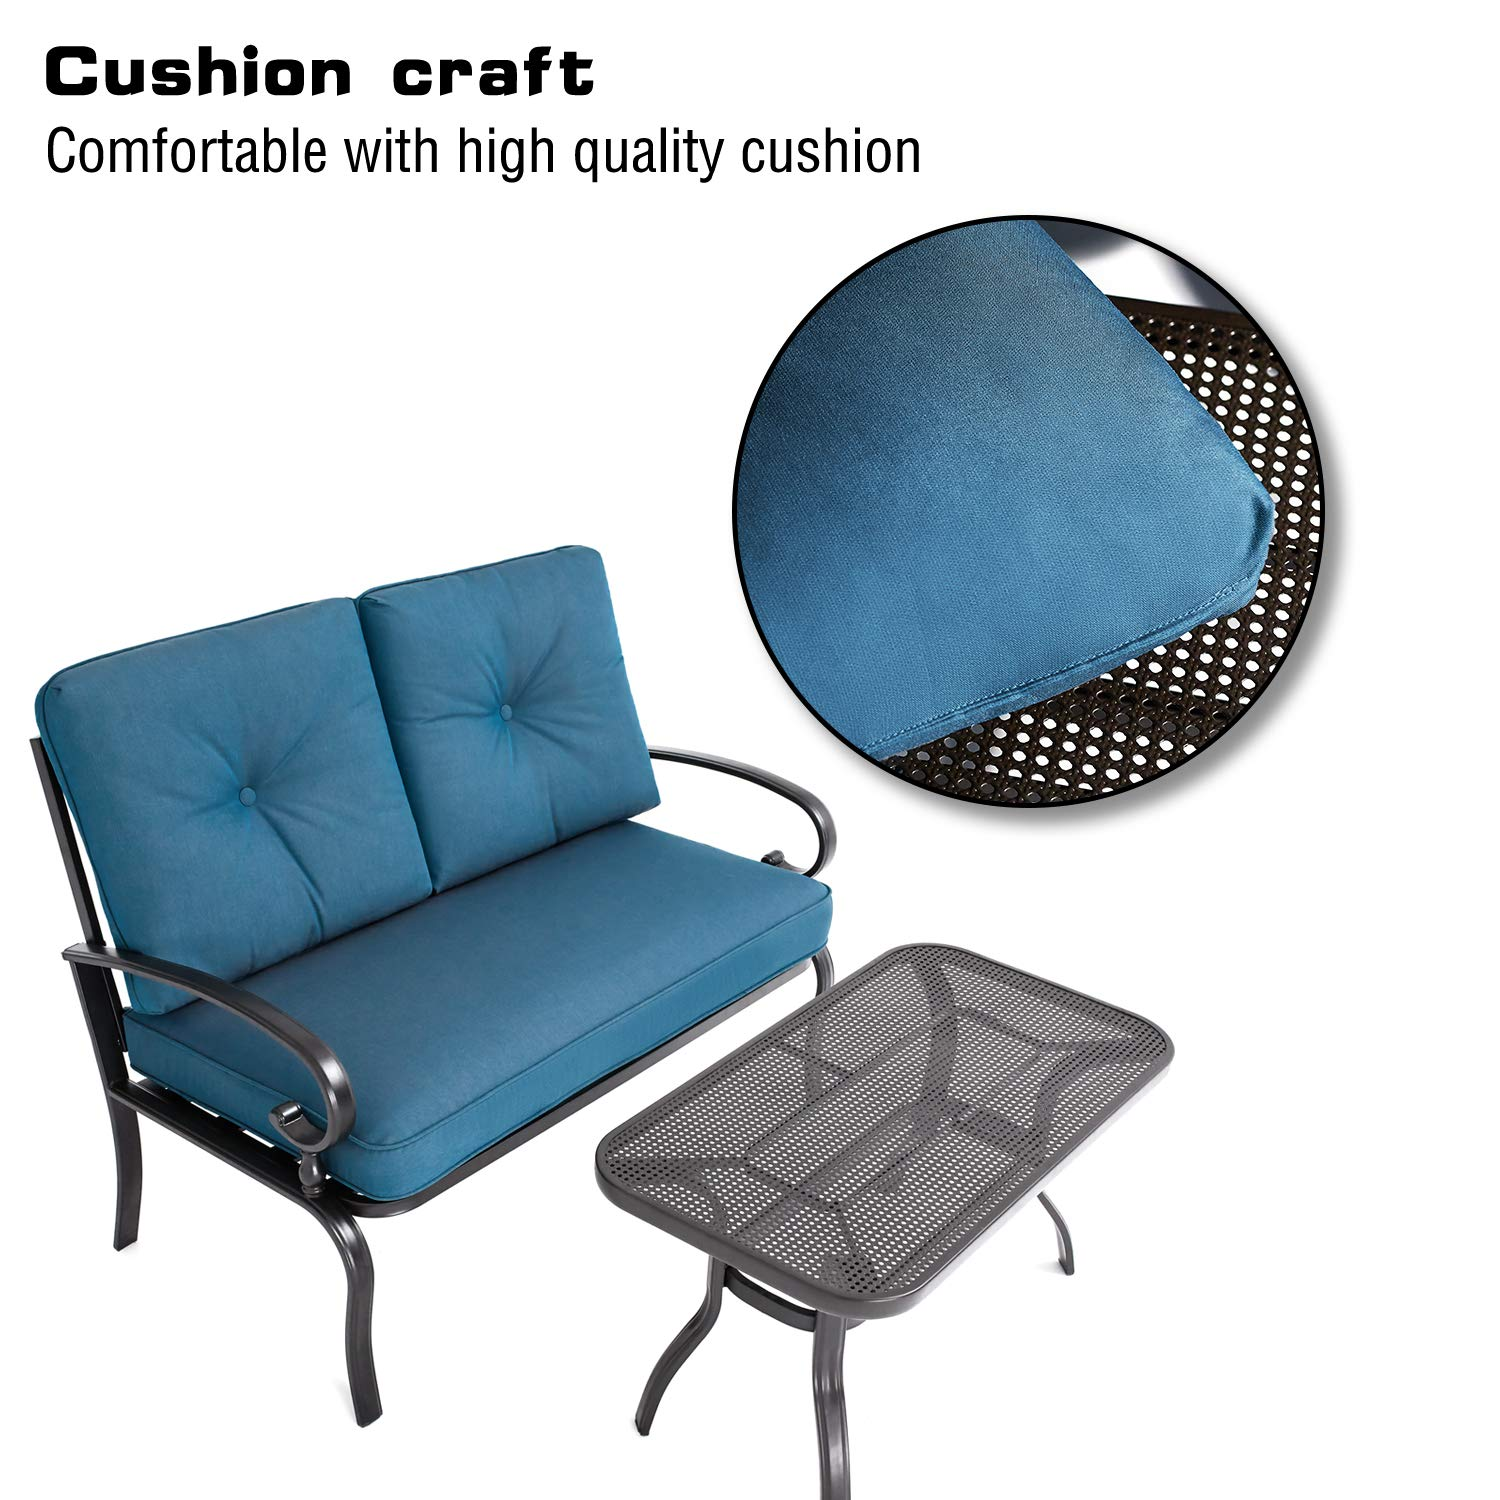 Oakmont Outdoor Furniture 2 Piece LoveSeat with Coffee Table Patio Bistro Set Peacock Blue Cushion for Lawn Front Porch Garden Yard or Poolside